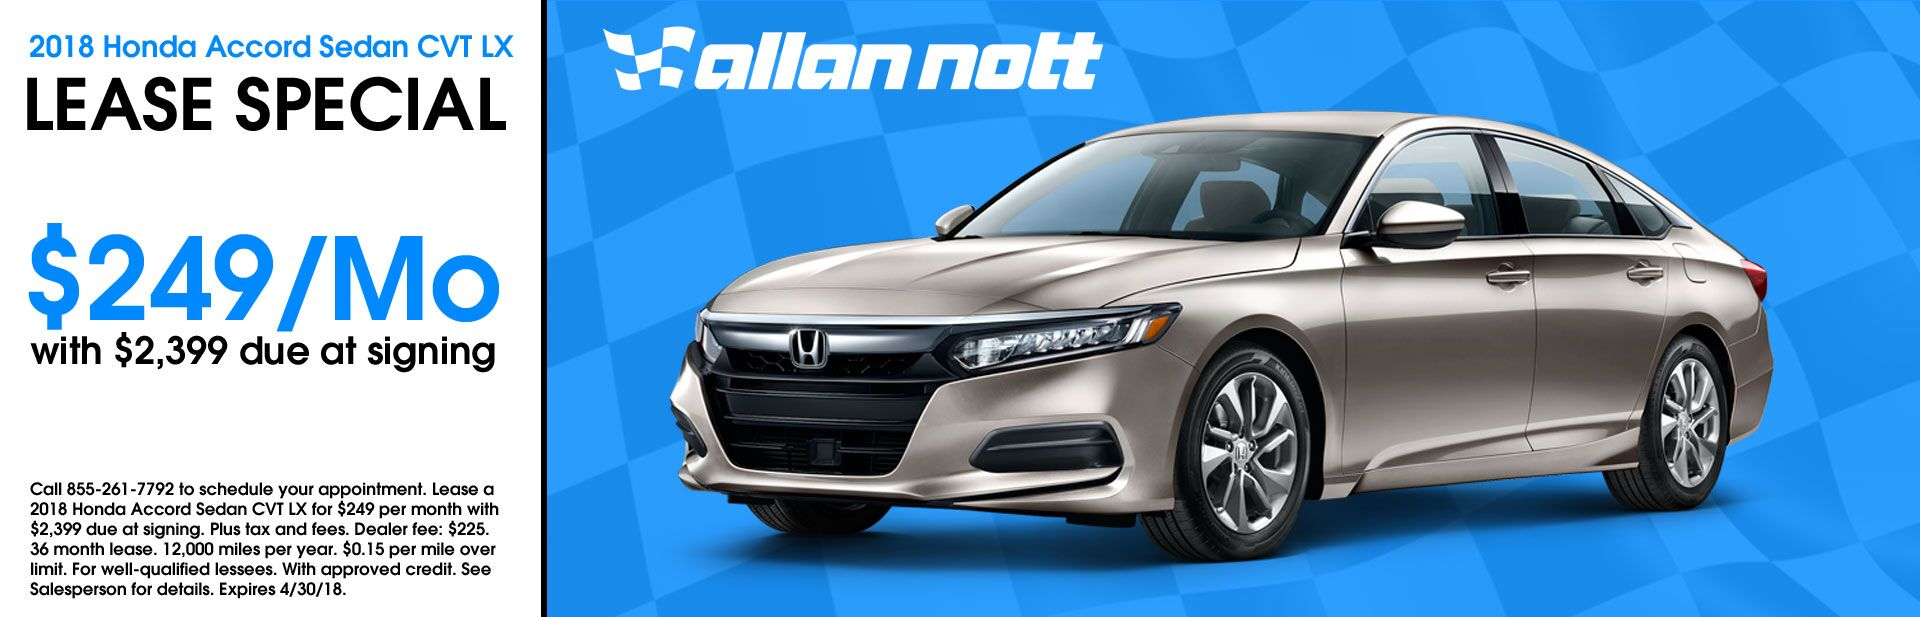 April 2018 - 2018 Honda Accord Sedan CVT LX Lease Special